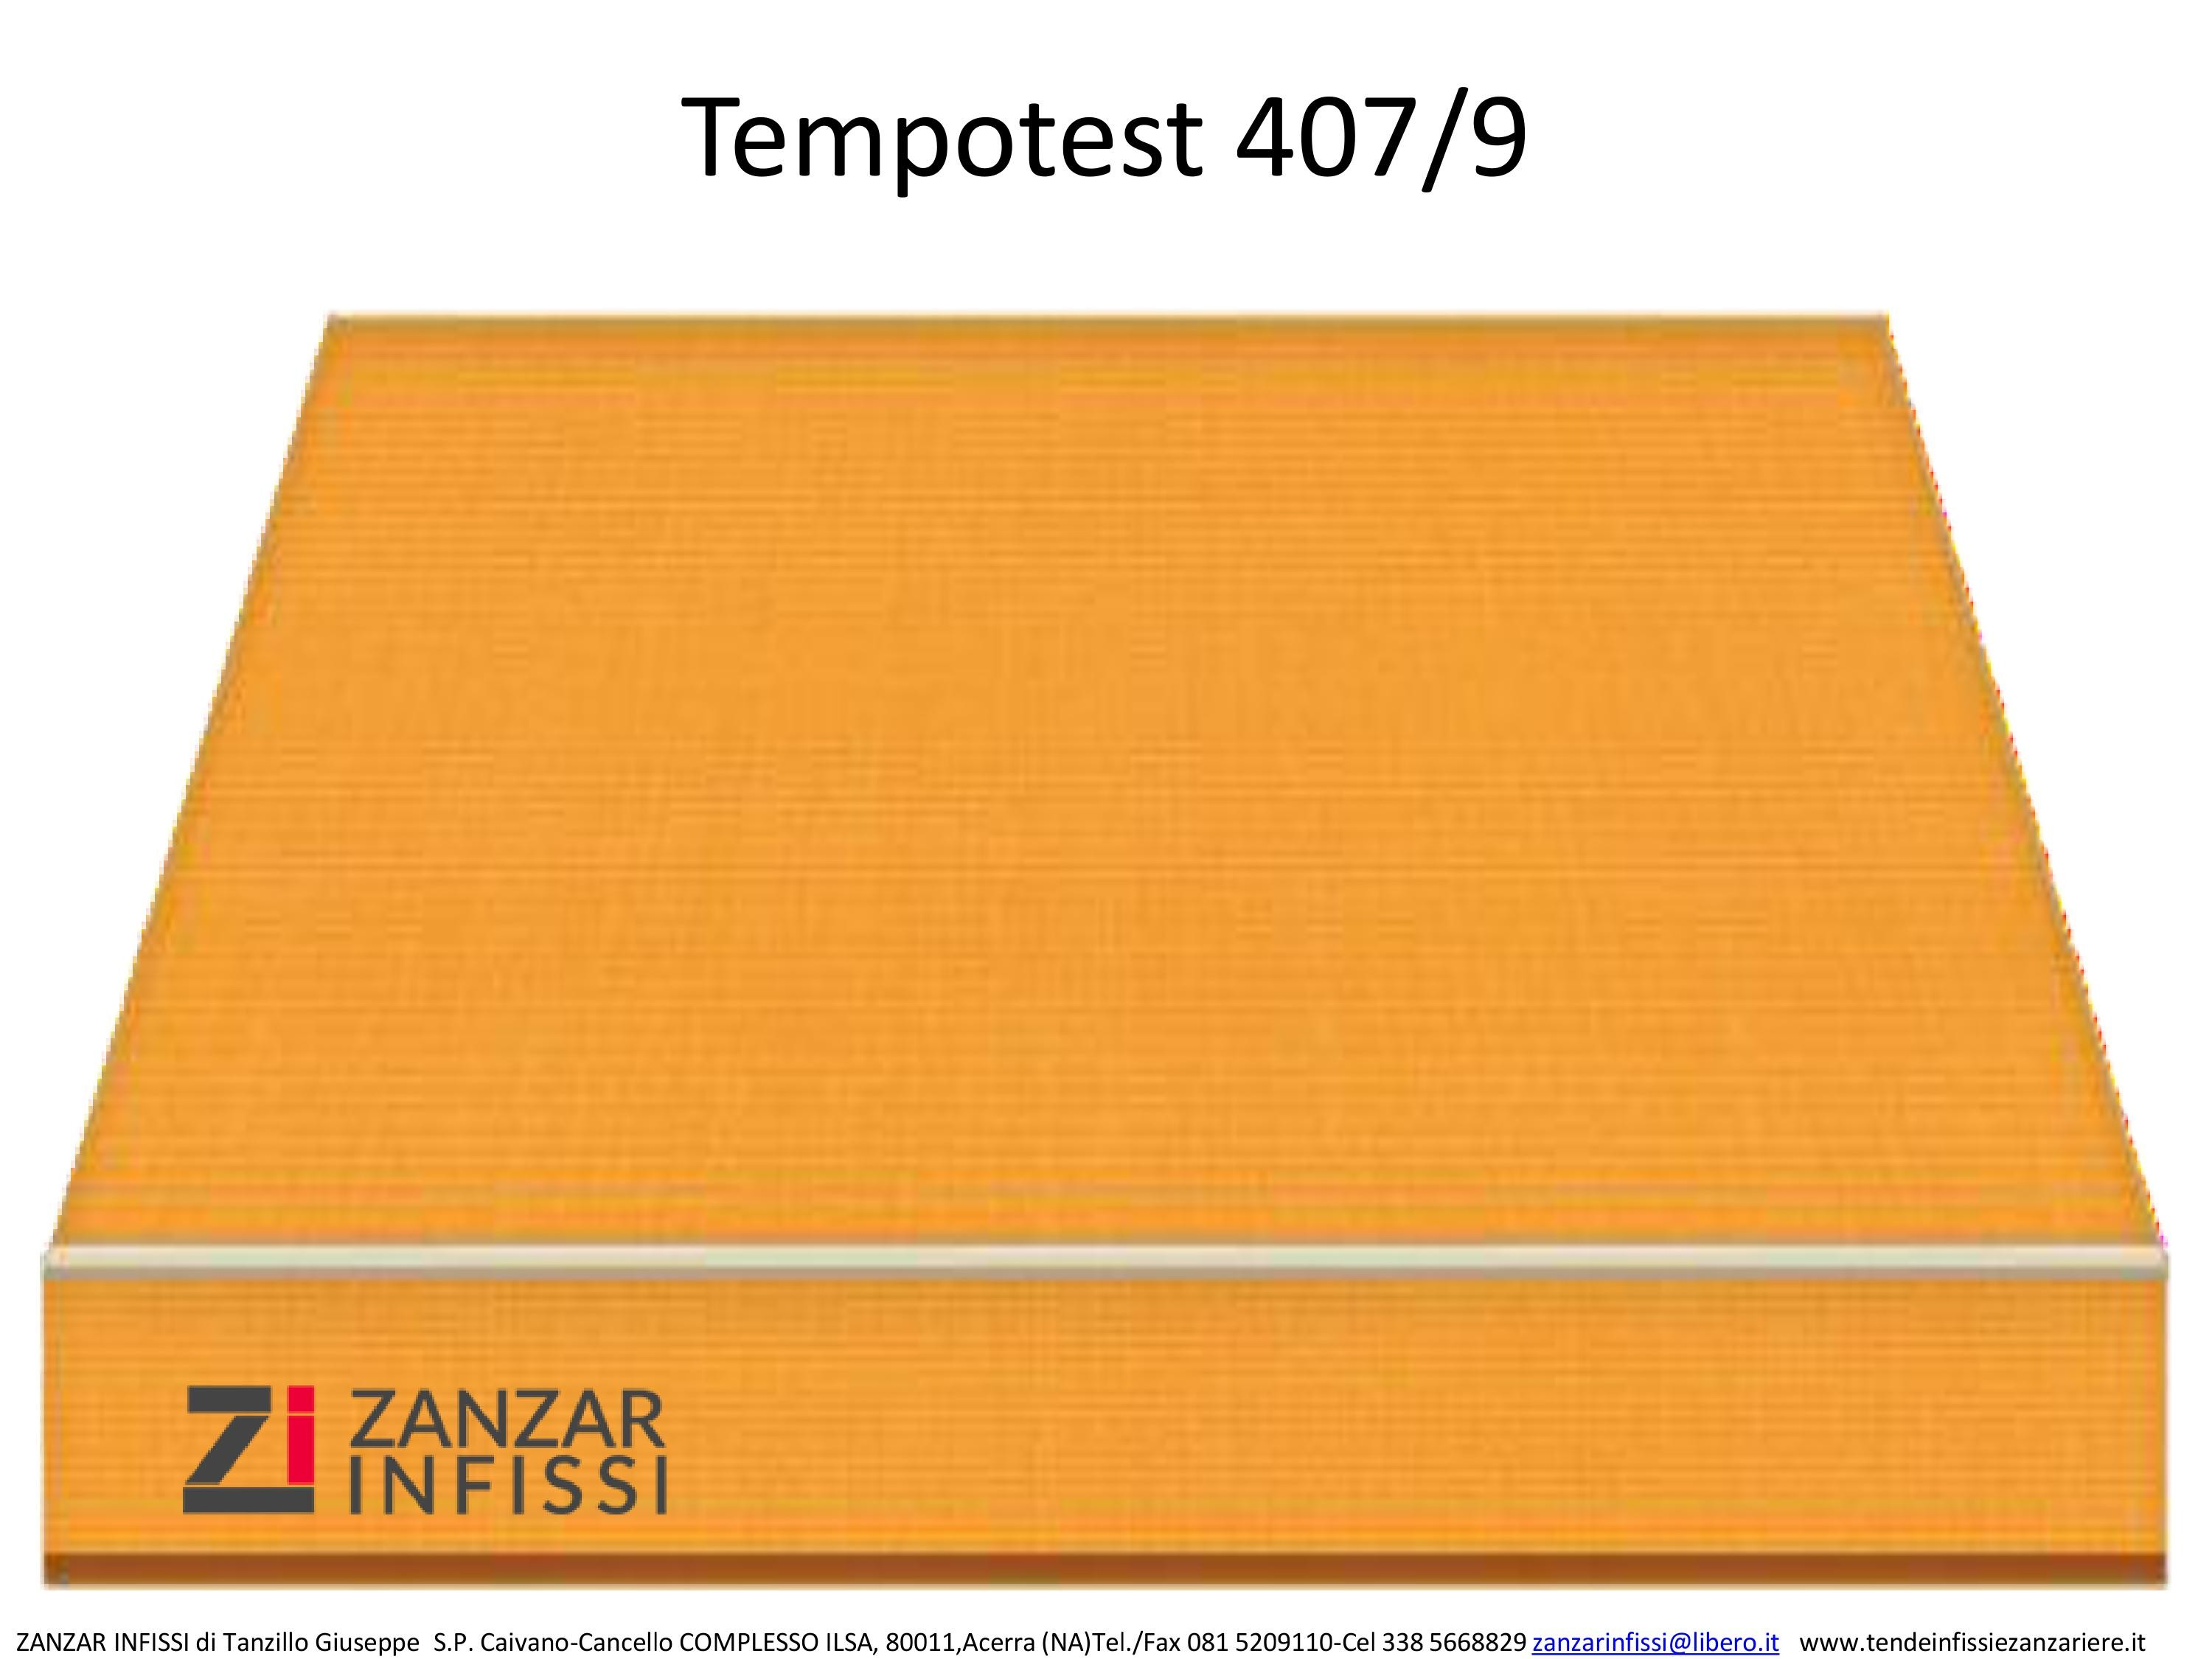 Tempotest 407/9